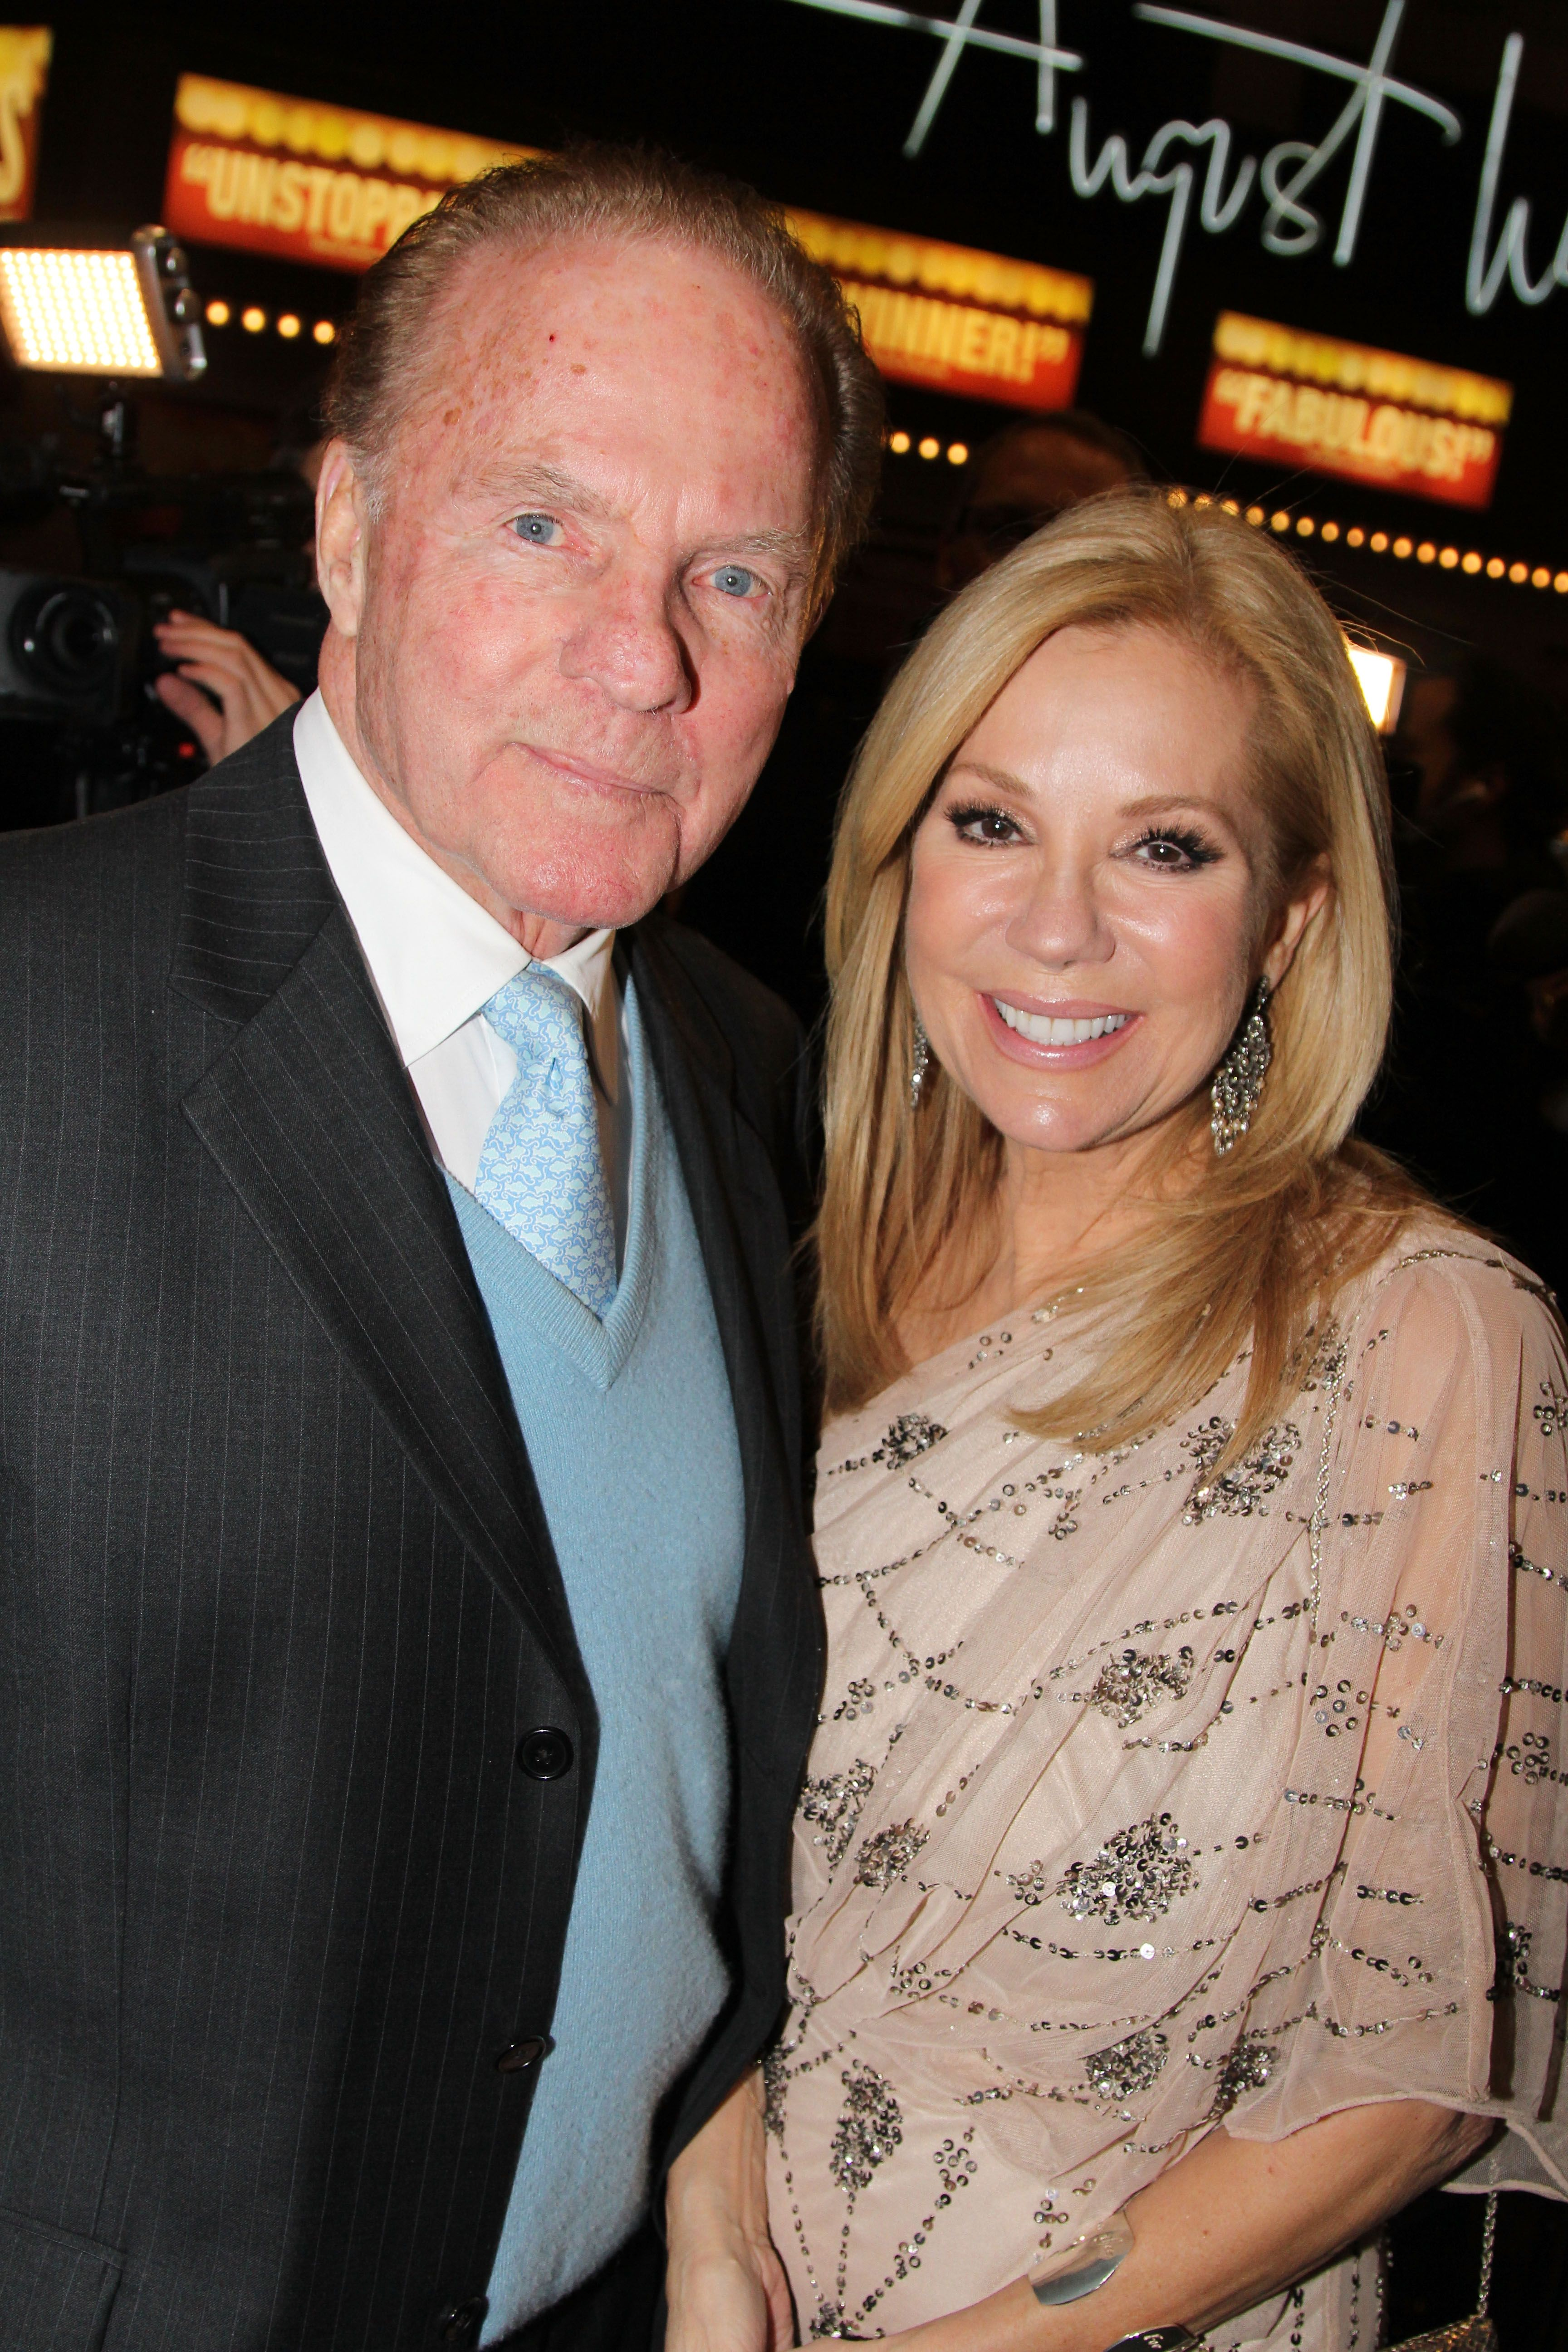 Kathie Lee Gifford Thought Her Whole World Was Going to End When